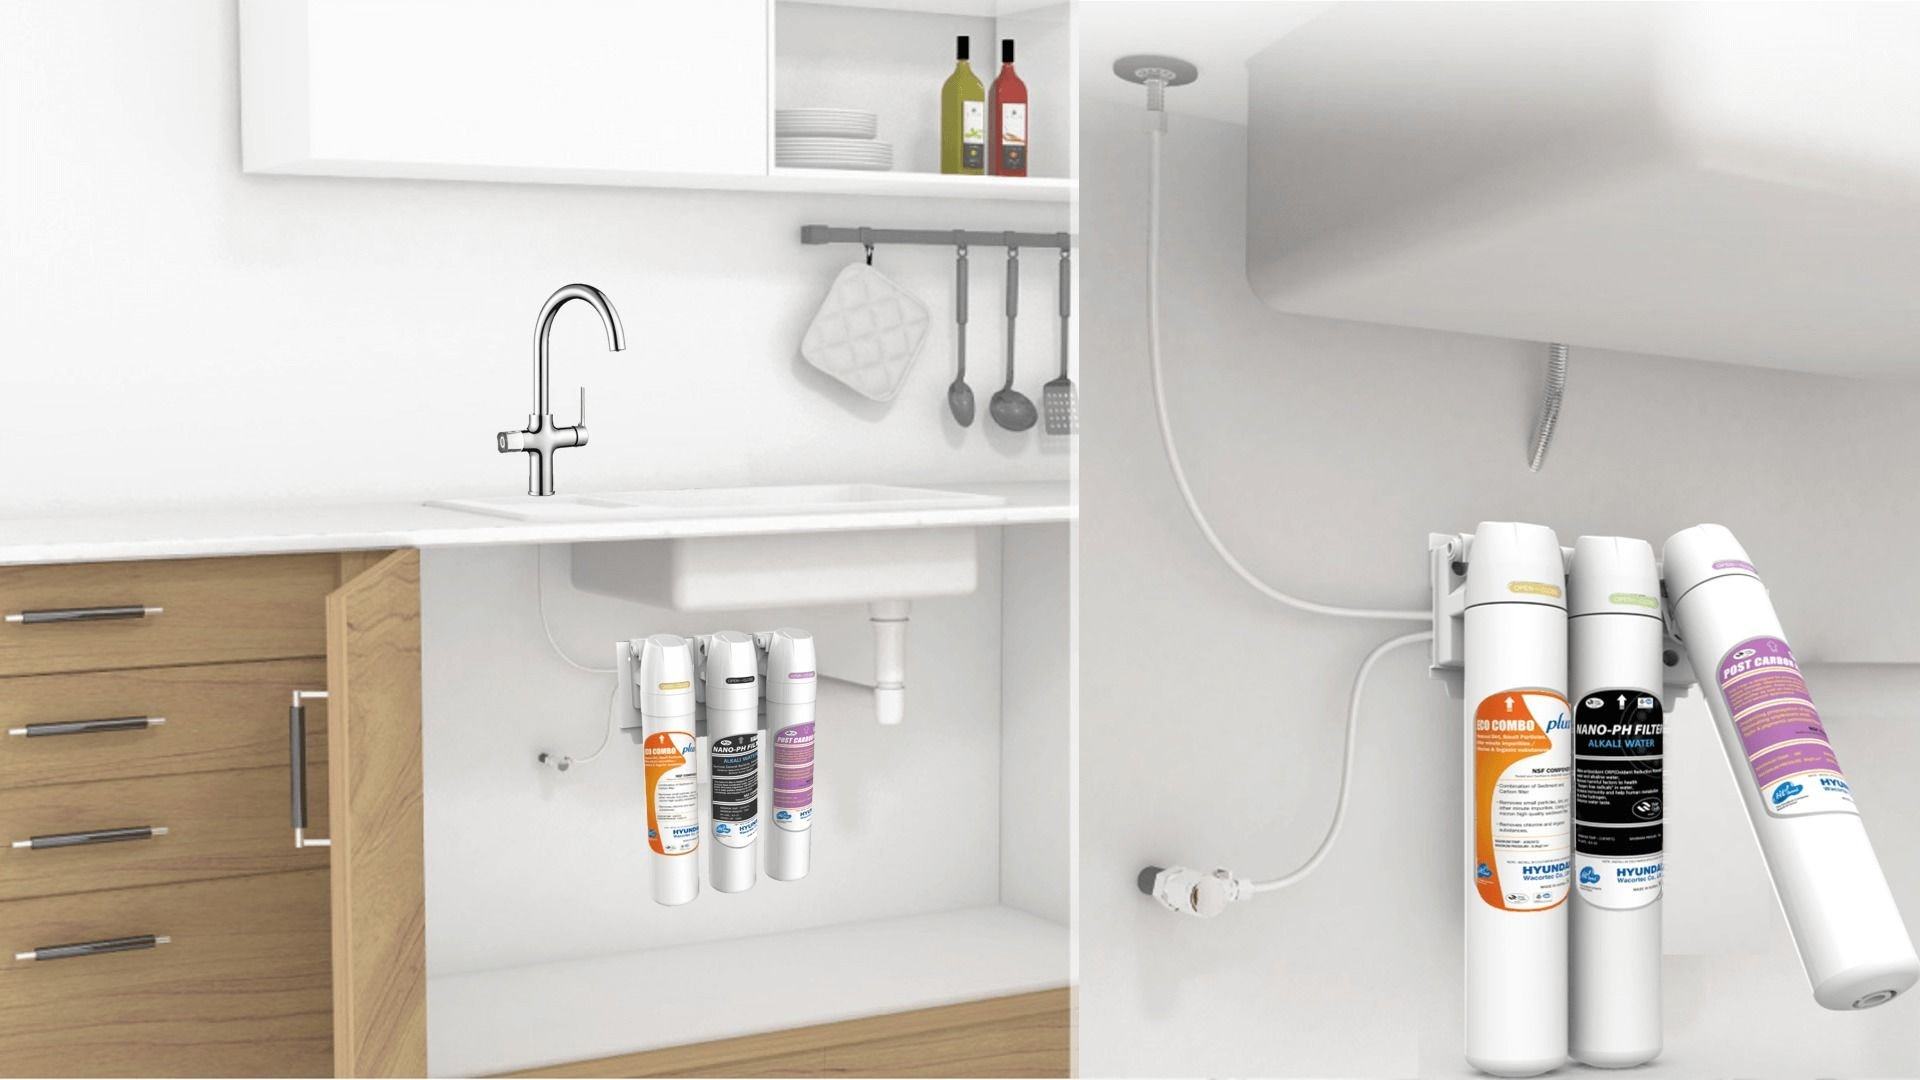 3 Stage Water Filtration Systems with under sink setup